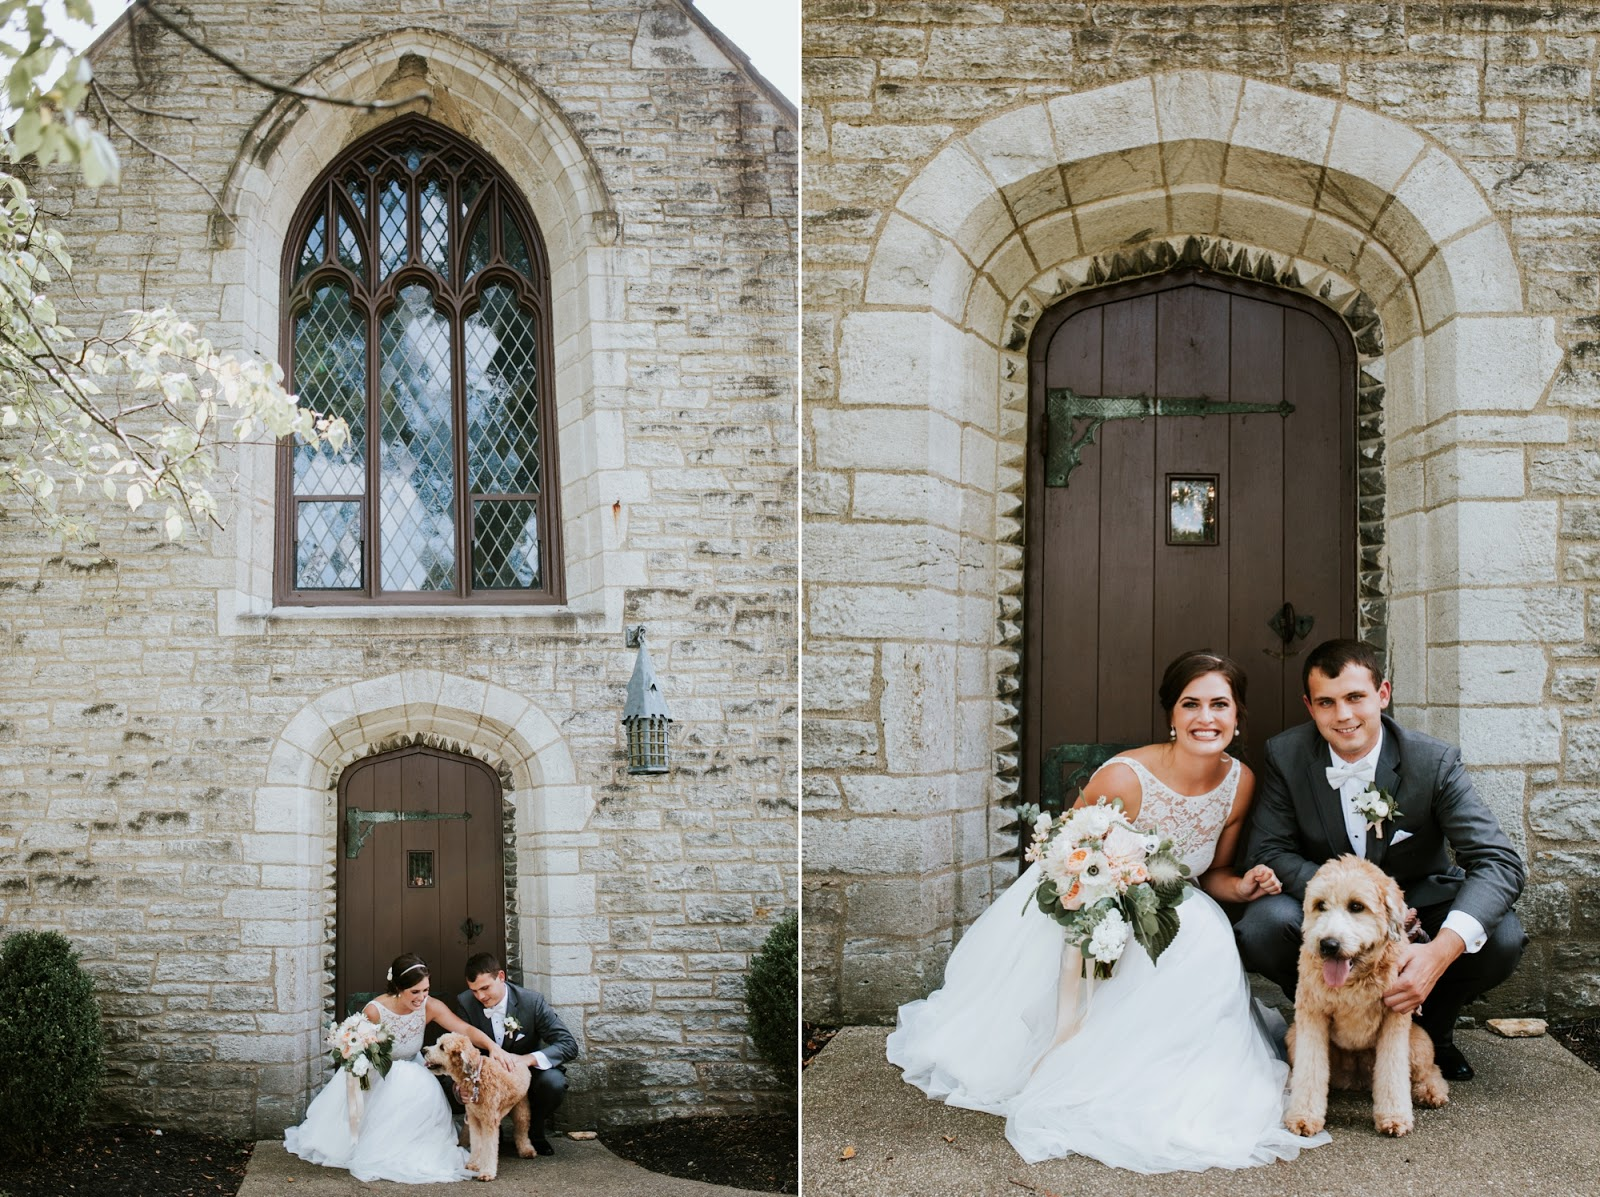 dog stands on wedding dress